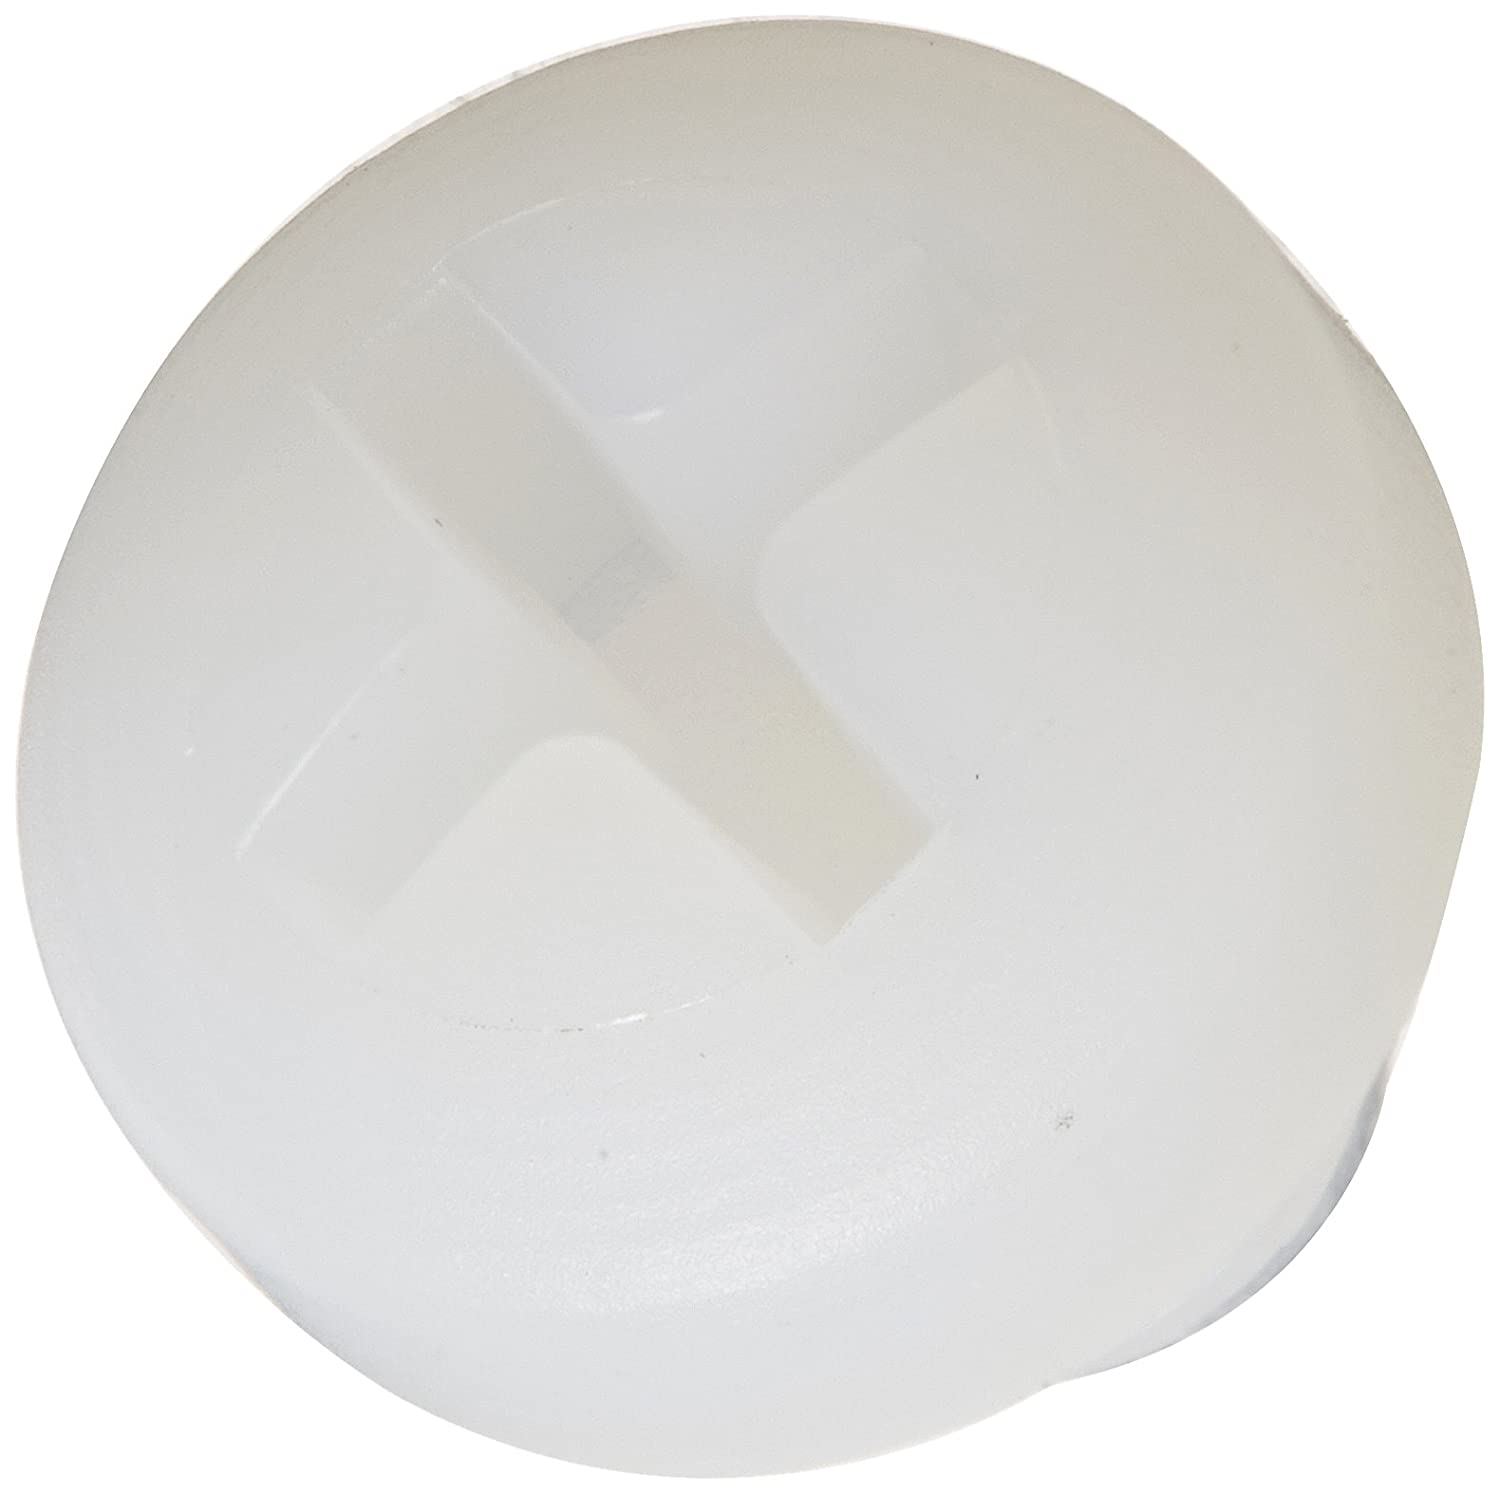 Pack of 100 Fully Threaded #10-32 Thread Size Nylon 6//6 Pan Head Machine Screw Off-White #2 Phillips Drive 1-3//16 Length USA Made